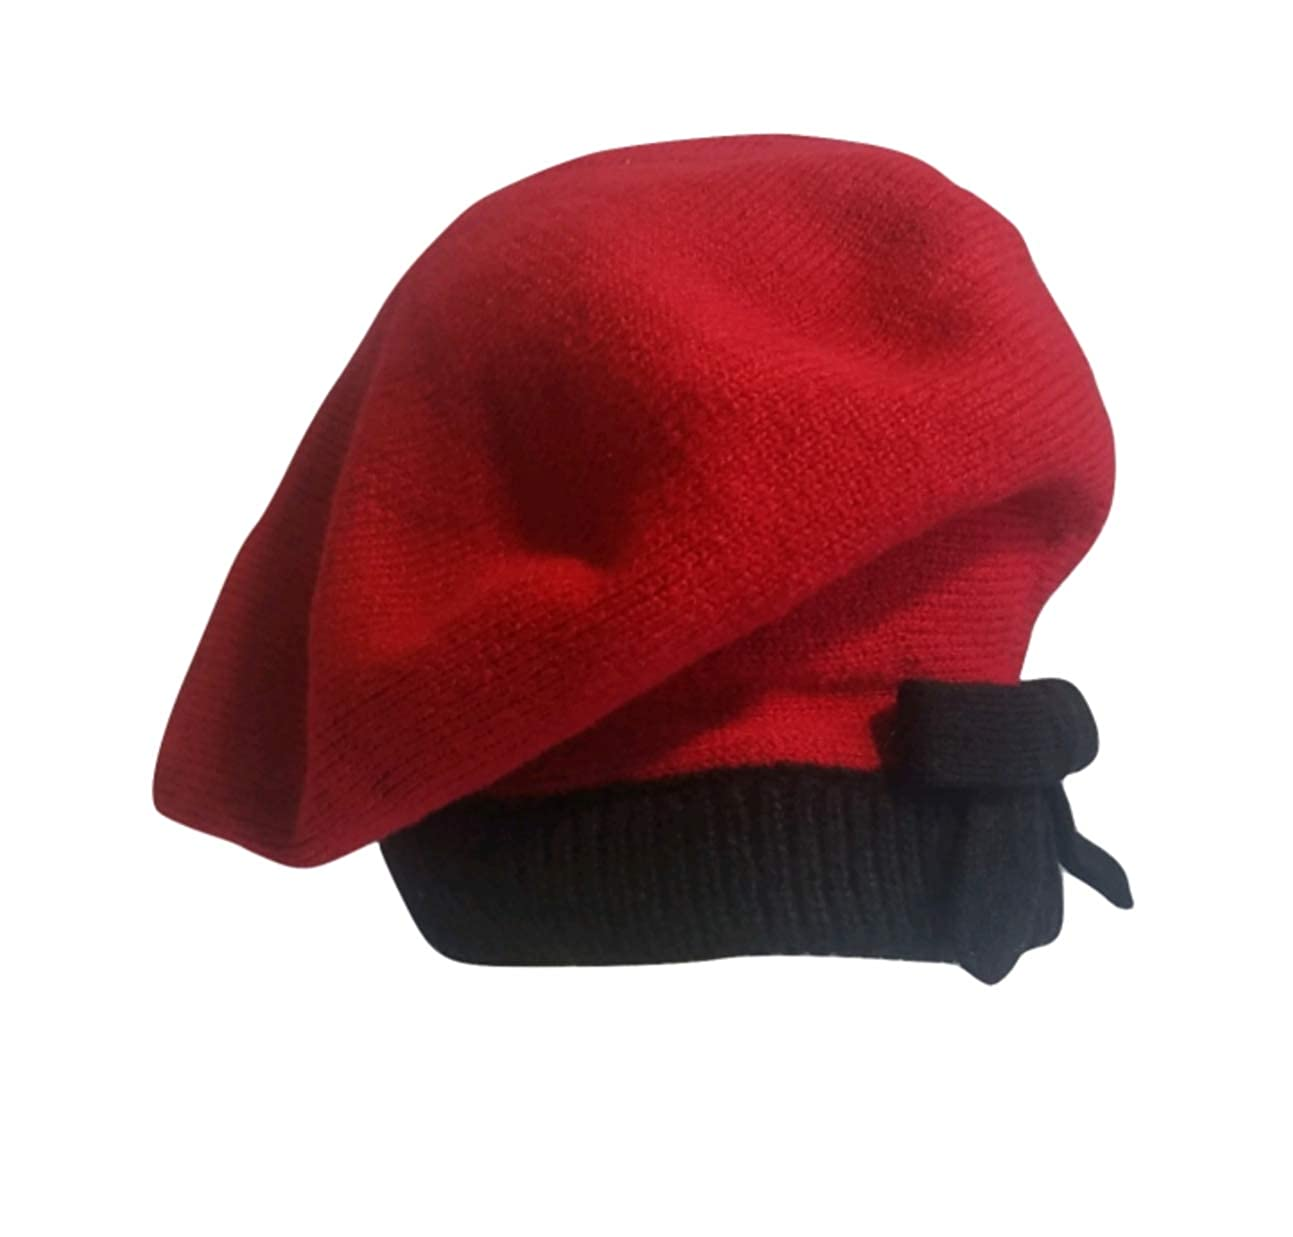 Kate Spade Contrast Bow Beret, Charm Red